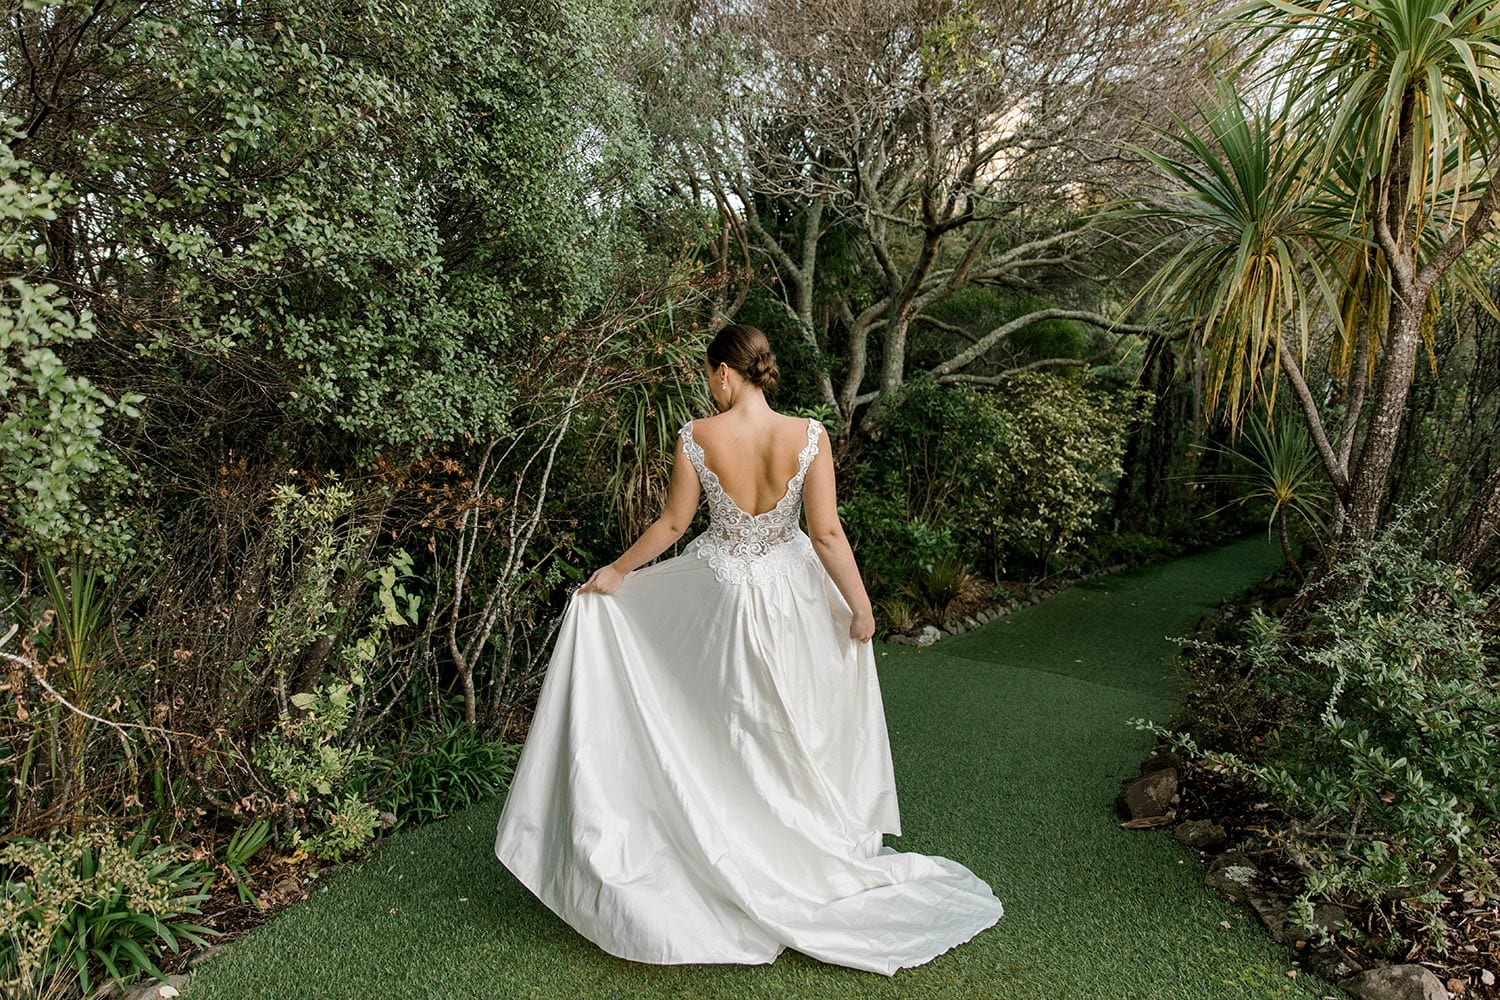 Ashleigh Wedding Dress from Vinka Design. Wedding dress with semi-sheer, richly embroidered fitted bodice on a nude base adorned with guipure lace. Dramatic silk dupion full skirt with side pockets. Dress from behind with model walking away, photographed at Tui Hills by Emmaline Photography.